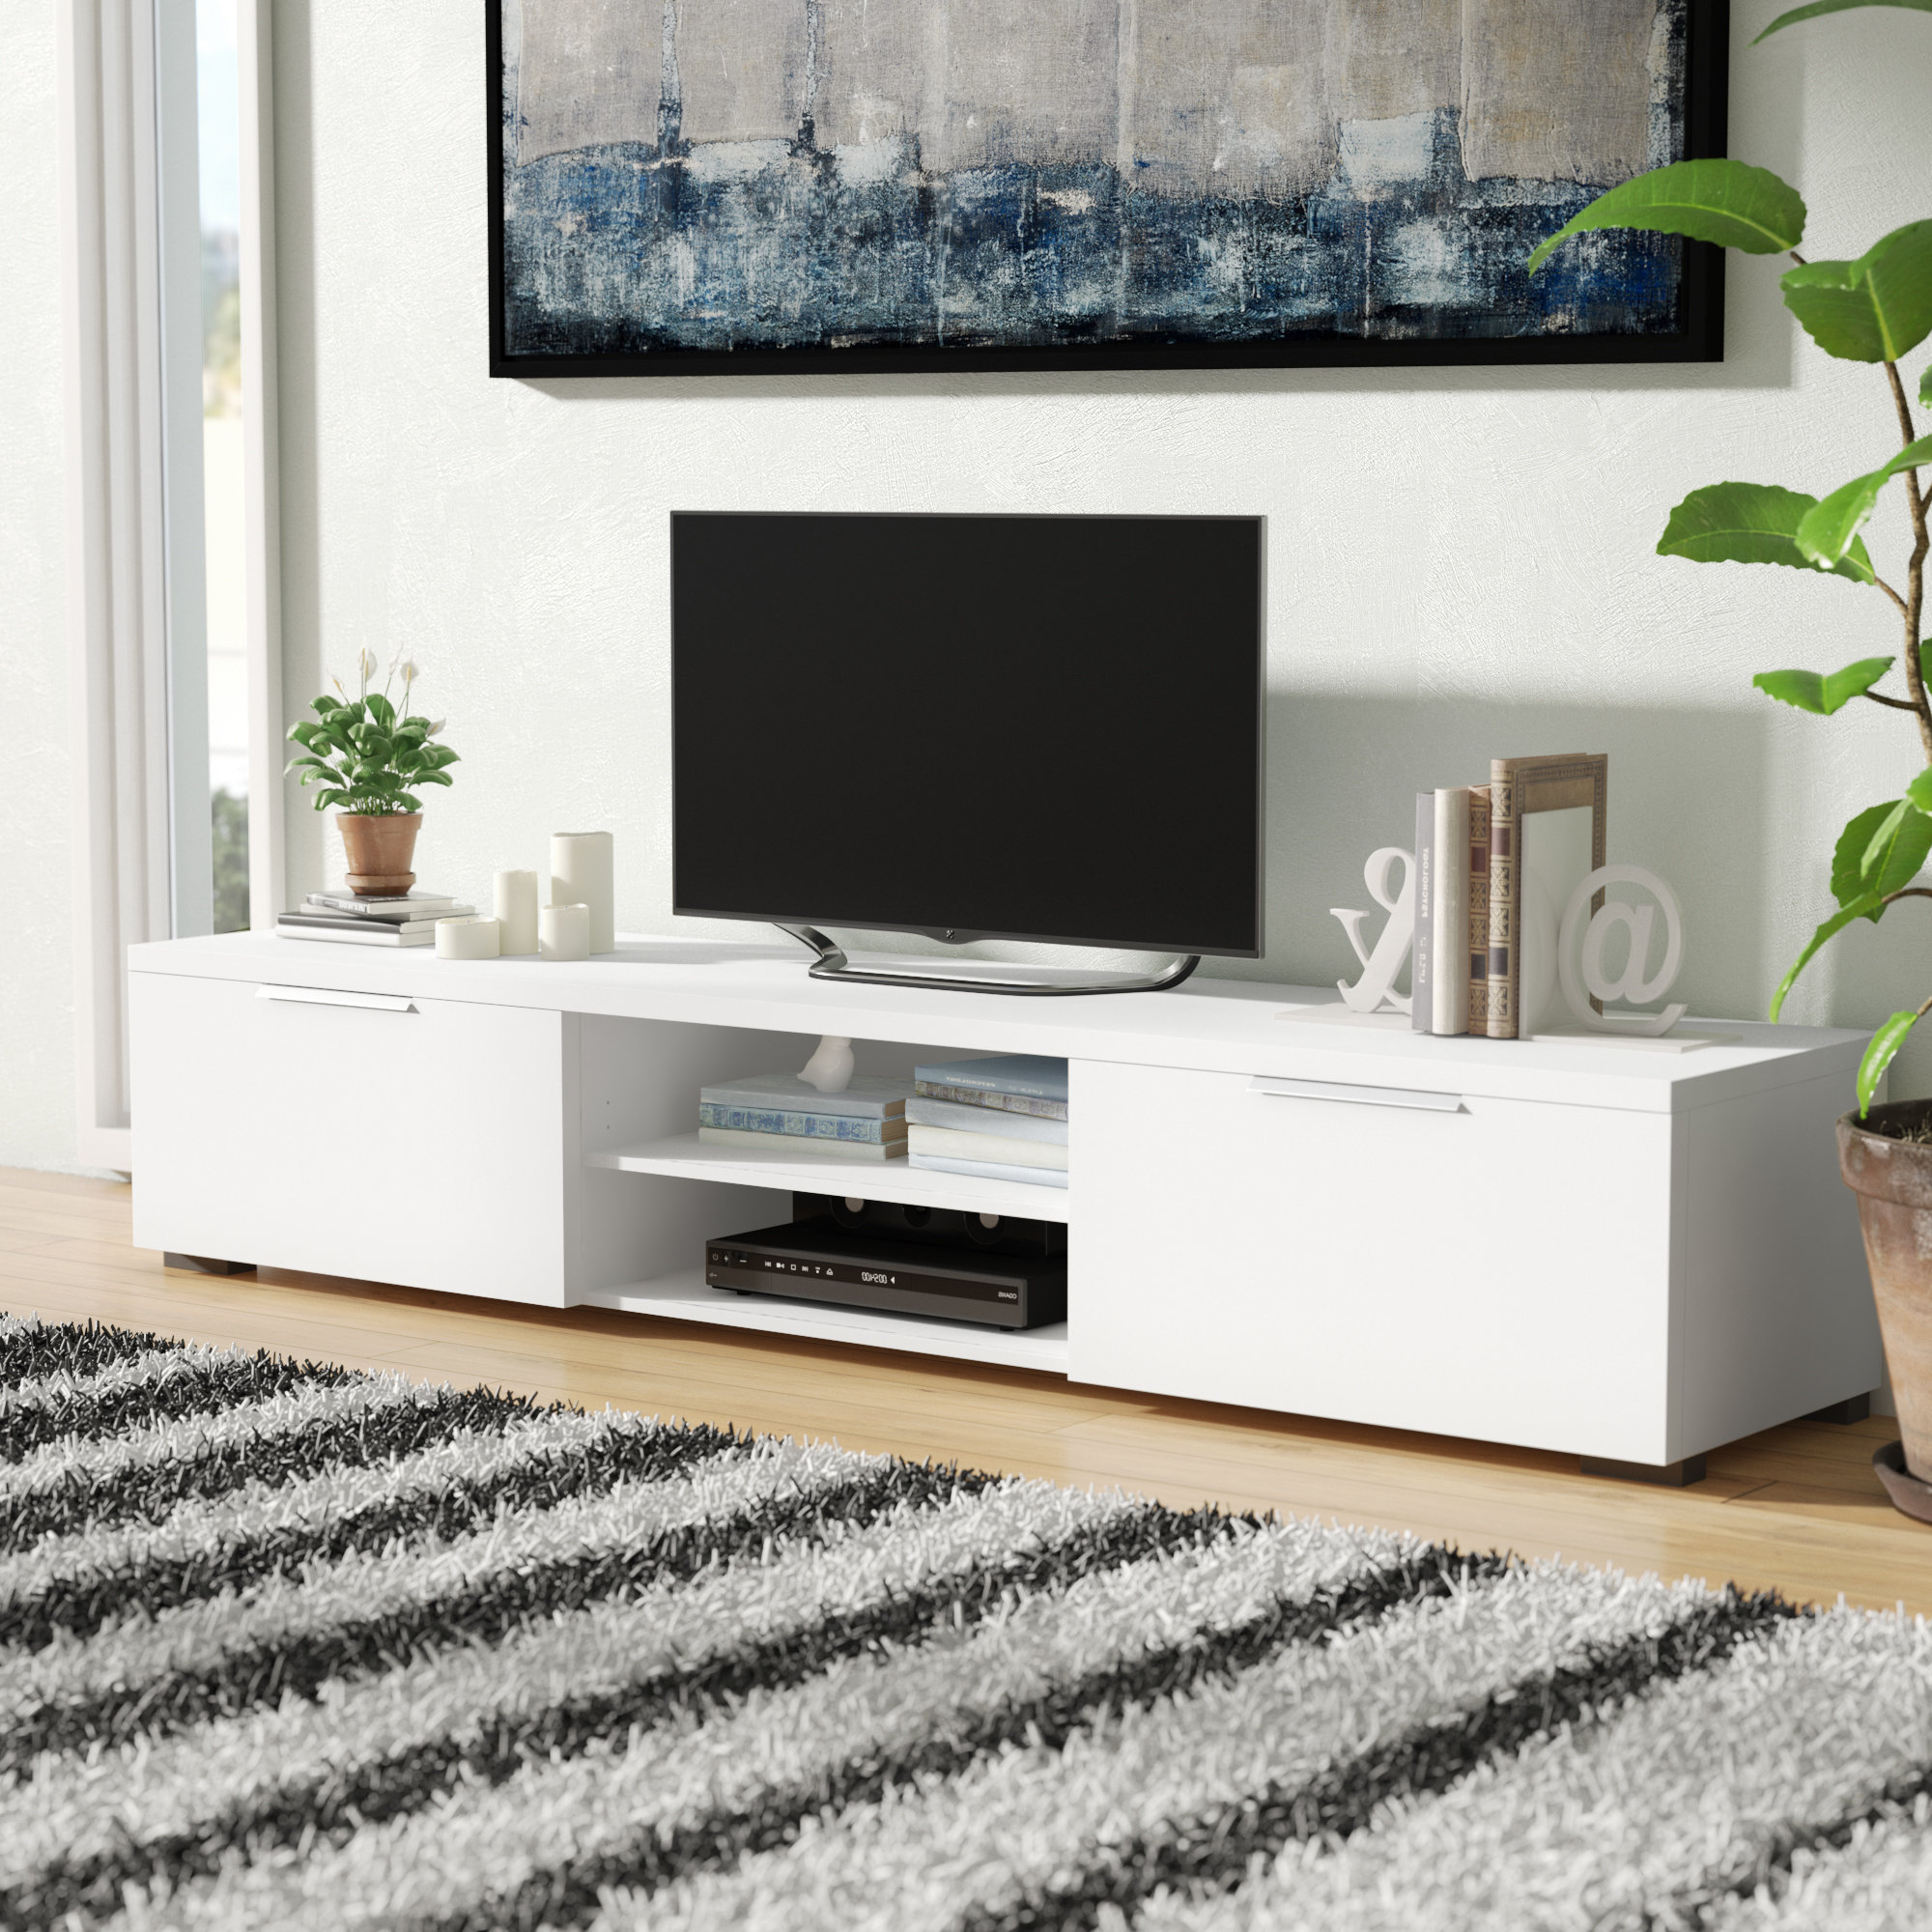 End Table And Tv Stand Set | Wayfair With Combs 63 Inch Tv Stands (View 16 of 20)